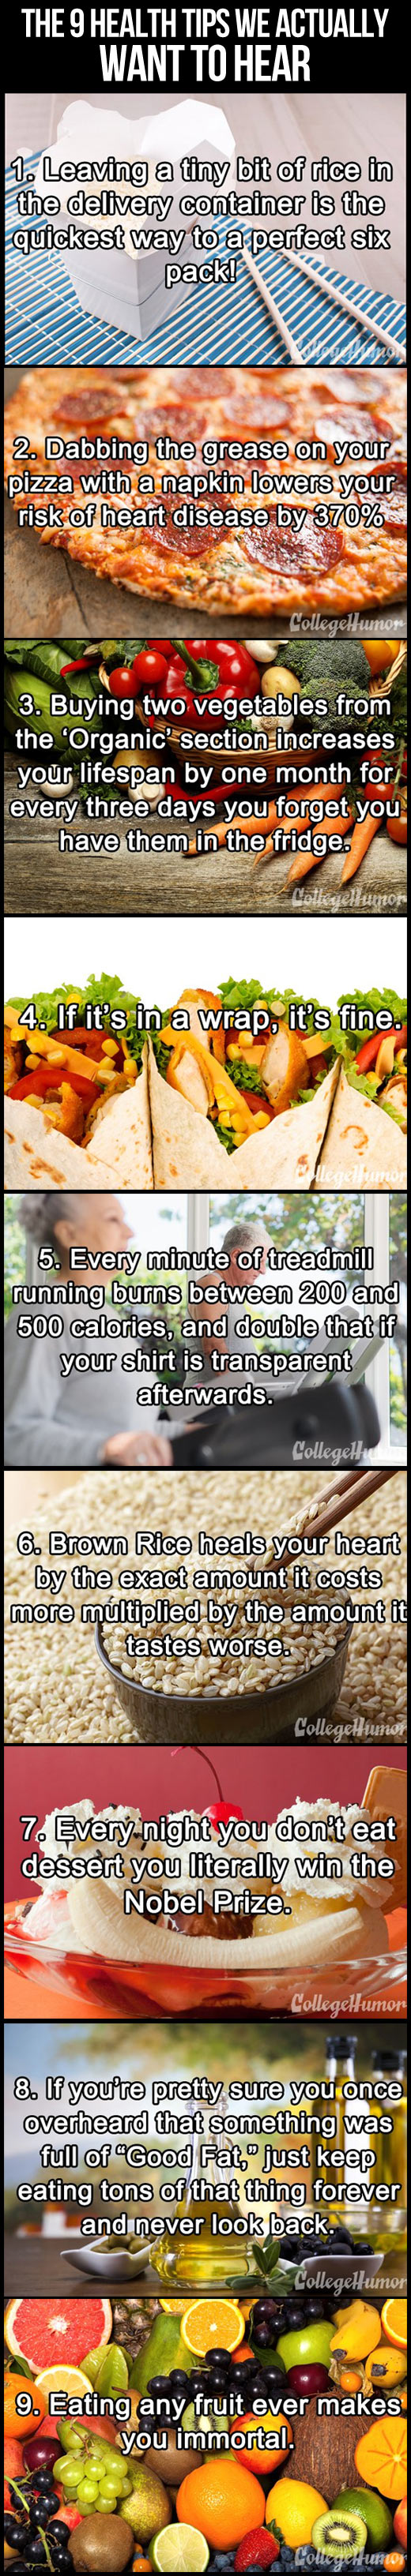 funny-health-tips-diet